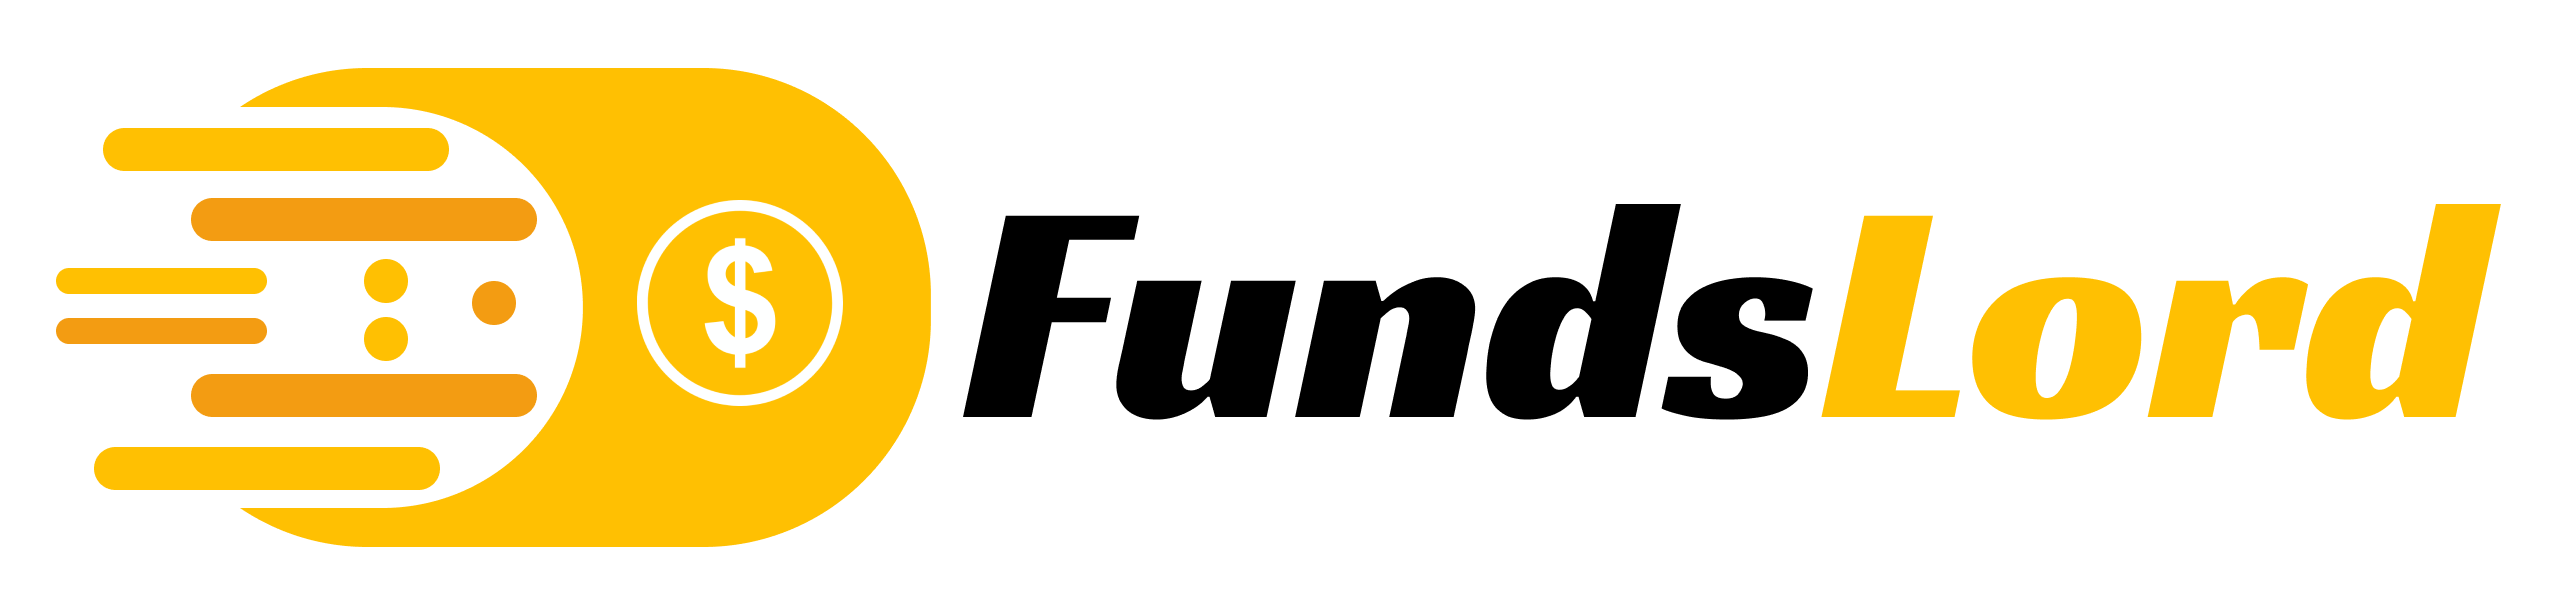 fundslord-logo